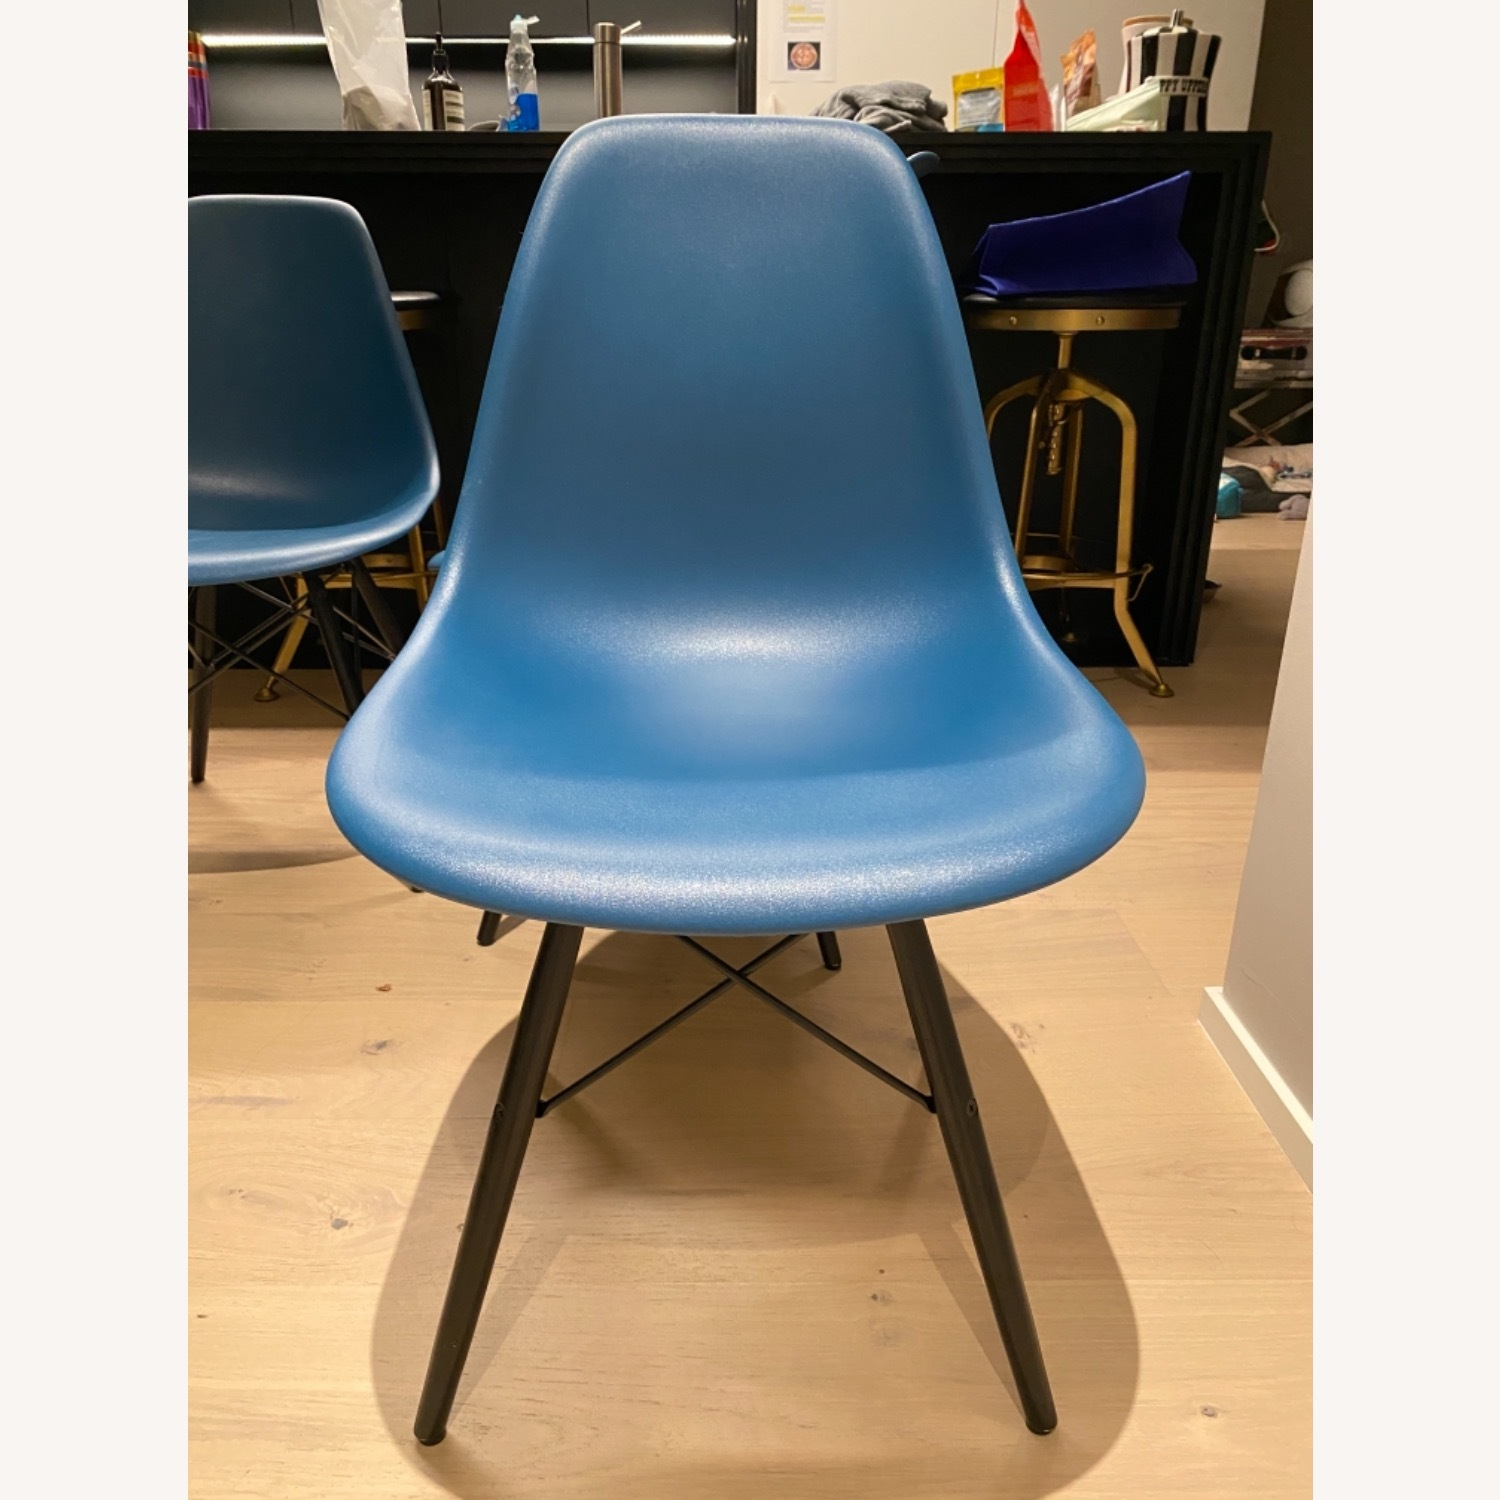 4 x Herman Miller Eames Molded Plastic Side Chair - image-15